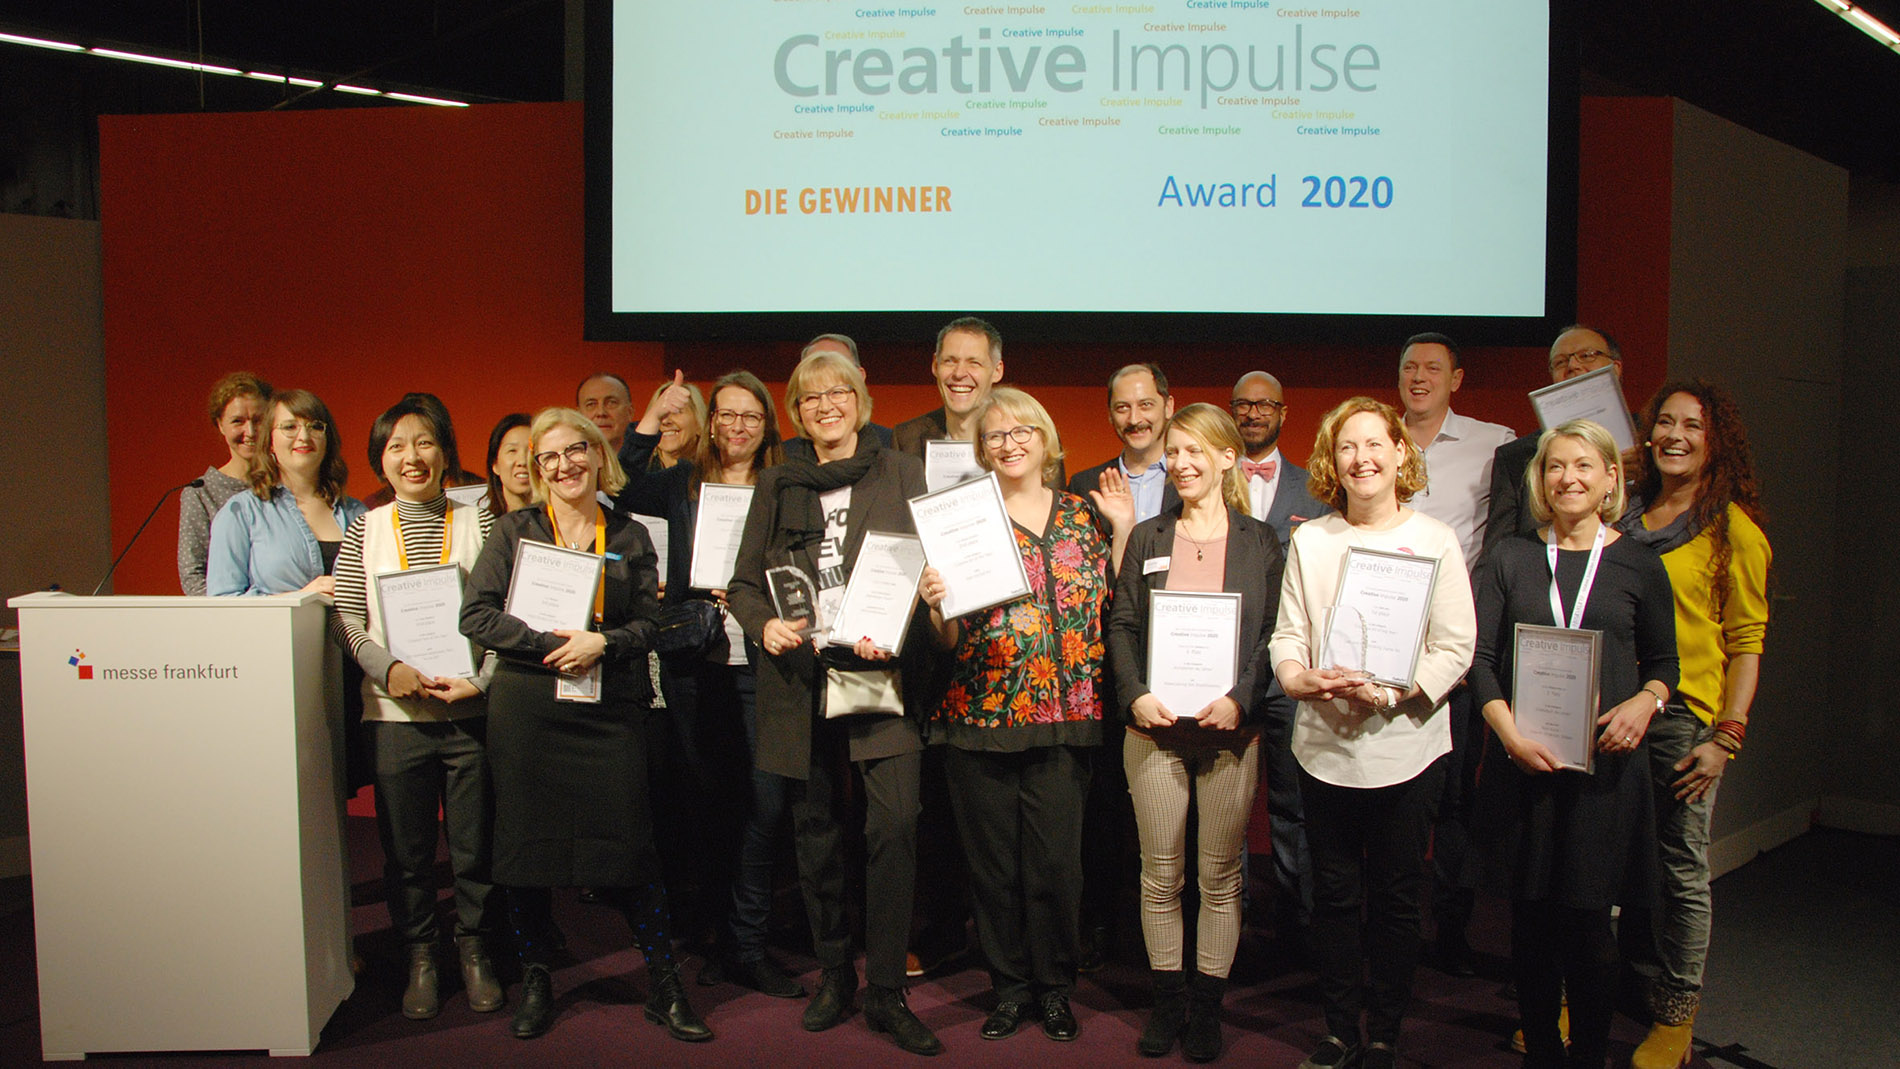 These are the 2020 winners of the Creative Impulse Award.